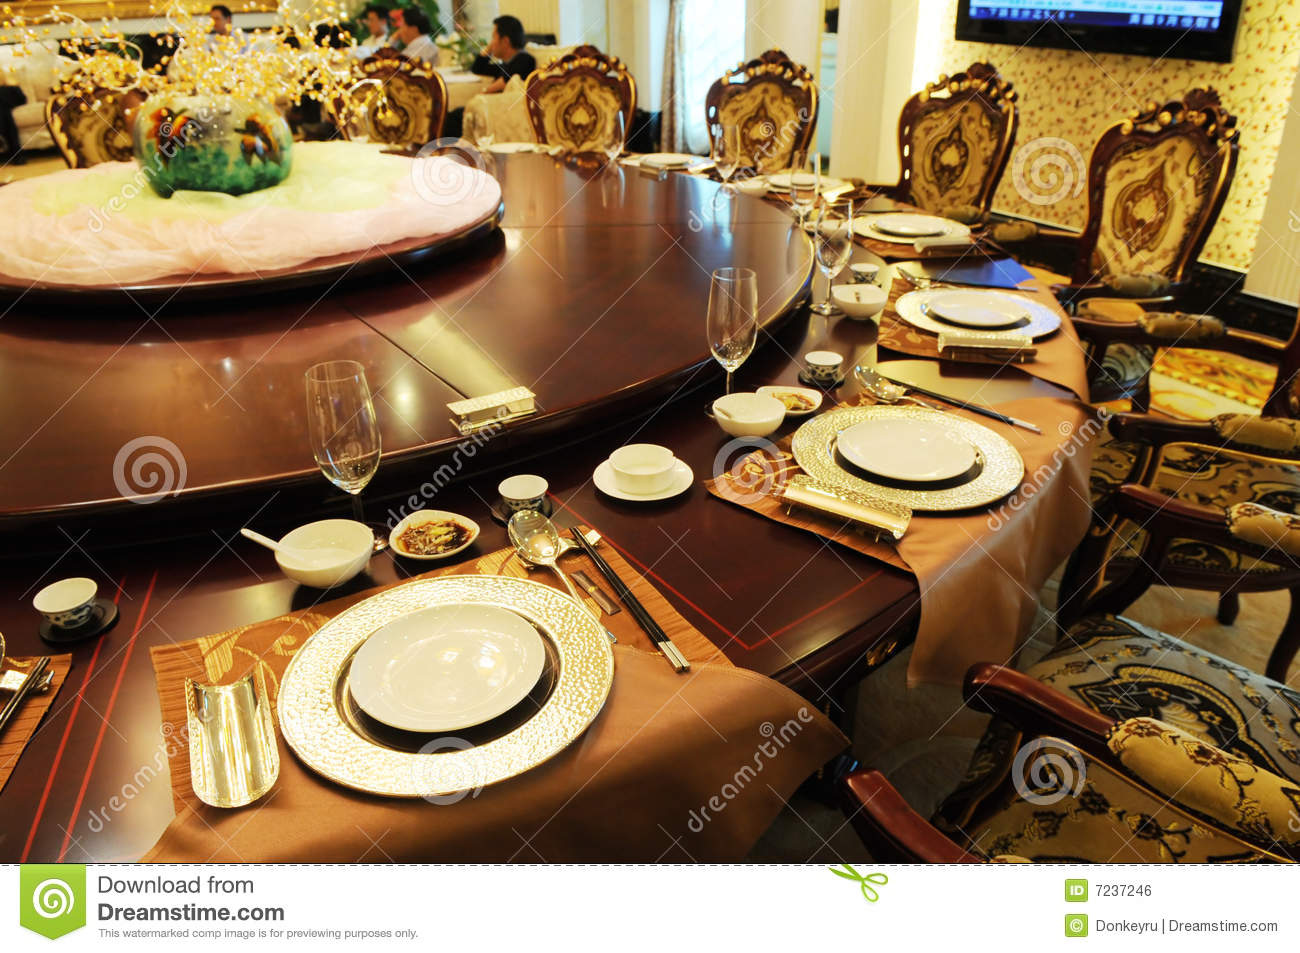 LocationPhotos G297653 Panchgani Maharashtra also Royalty Free Stock Image Luxury Formal Dinner Setting Image7237246 together with samuiairportonline further Gallery 15 together with Set Of Girls Faces 3 9627351. on exotic home plans